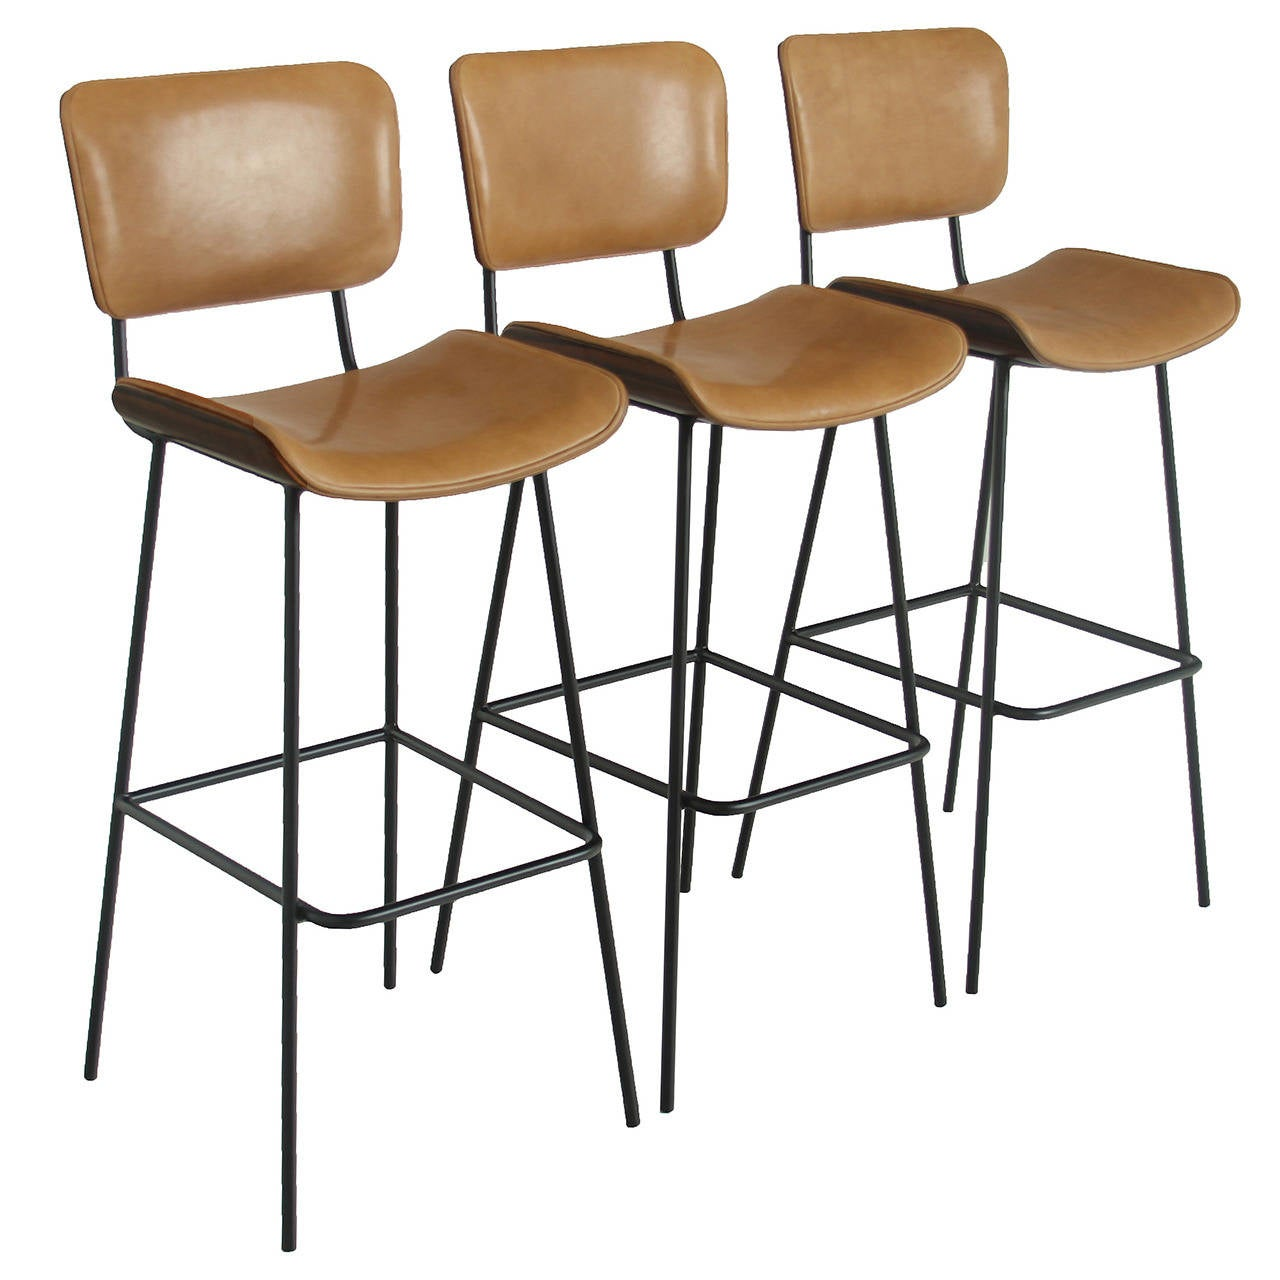 The Steel Cojo Stool by Thomas Hayes Studio For Sale 2